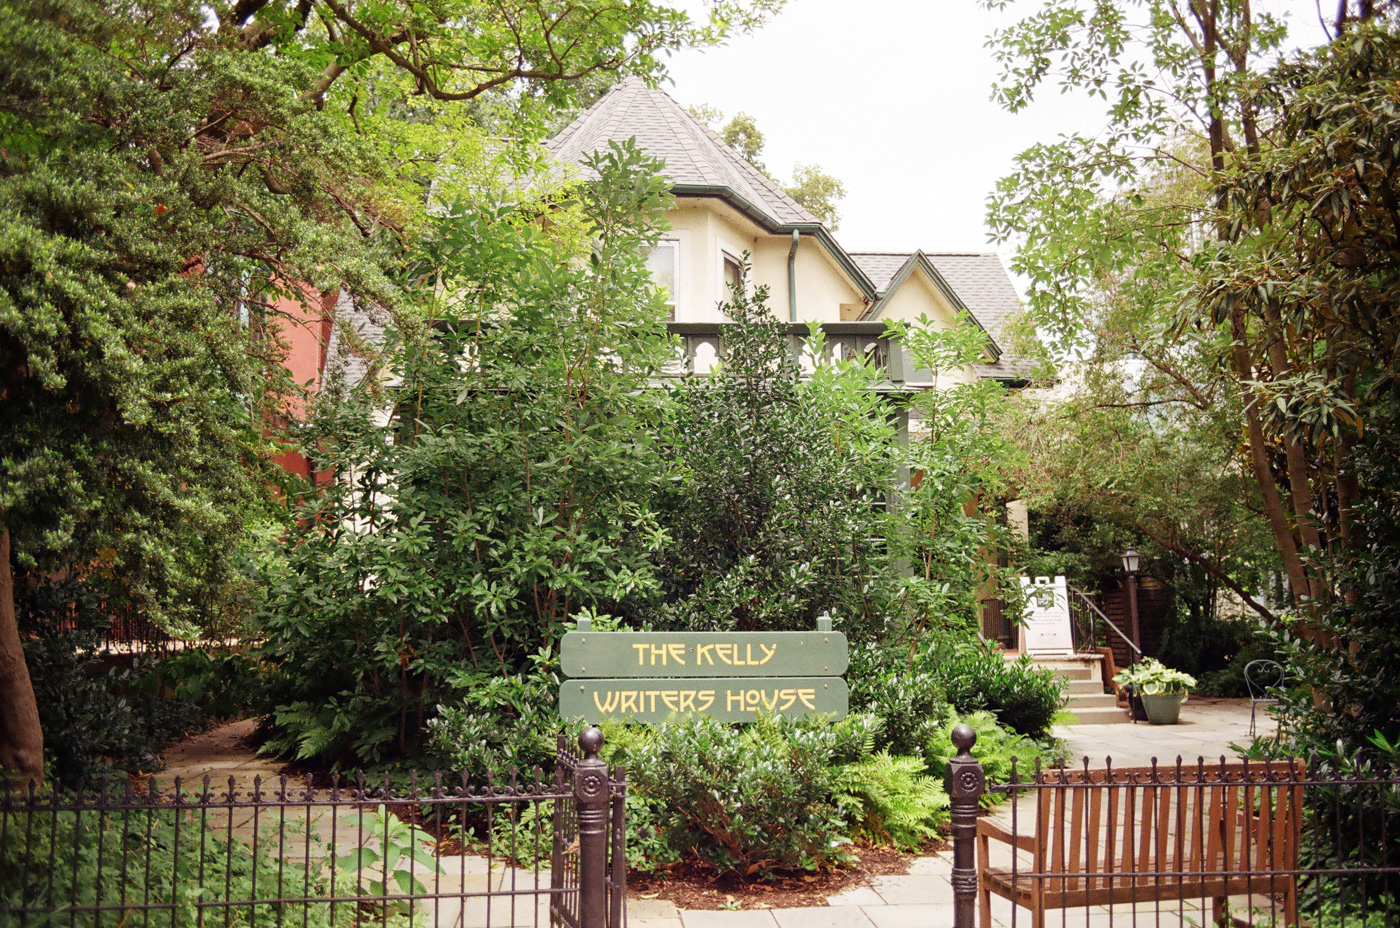 The Kelly Writers House